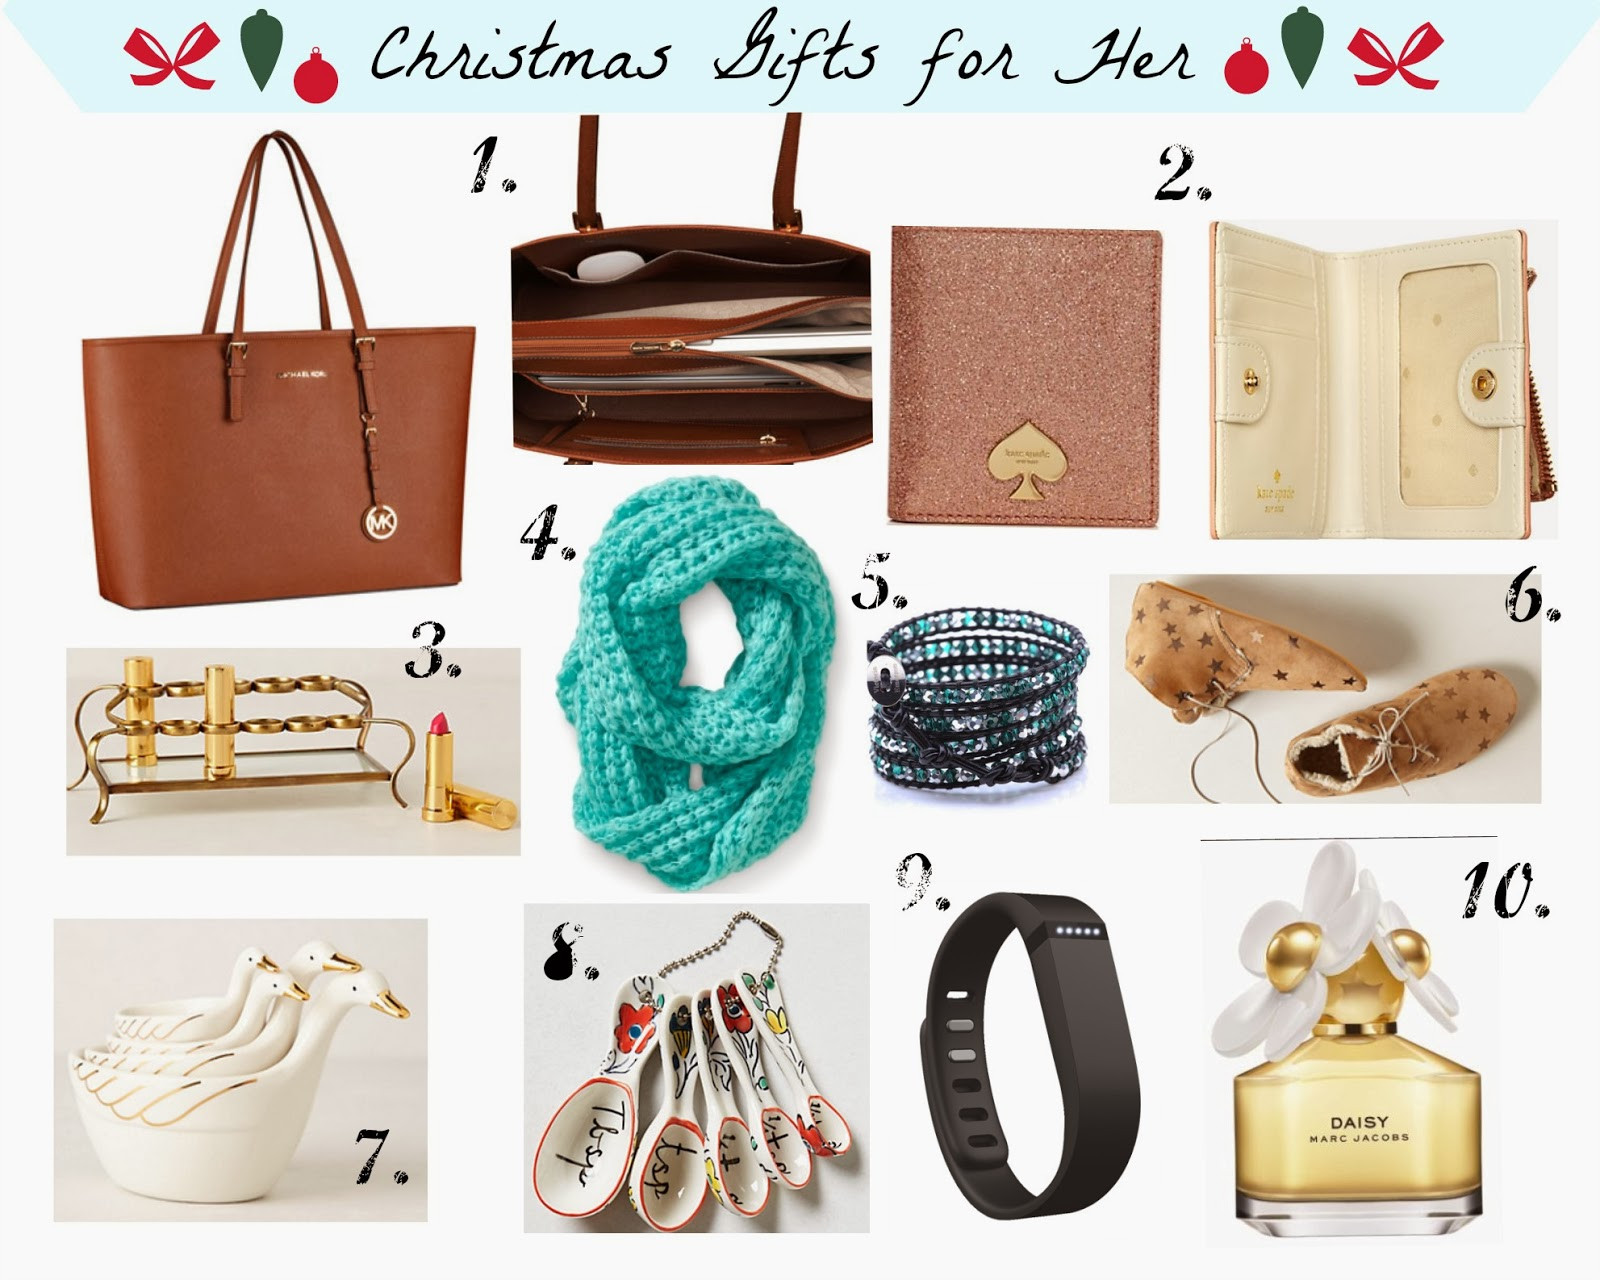 Best ideas about Great Couple Gift Ideas For Christmas . Save or Pin Best Gifts Ideas for Her Fit & Fab Now.